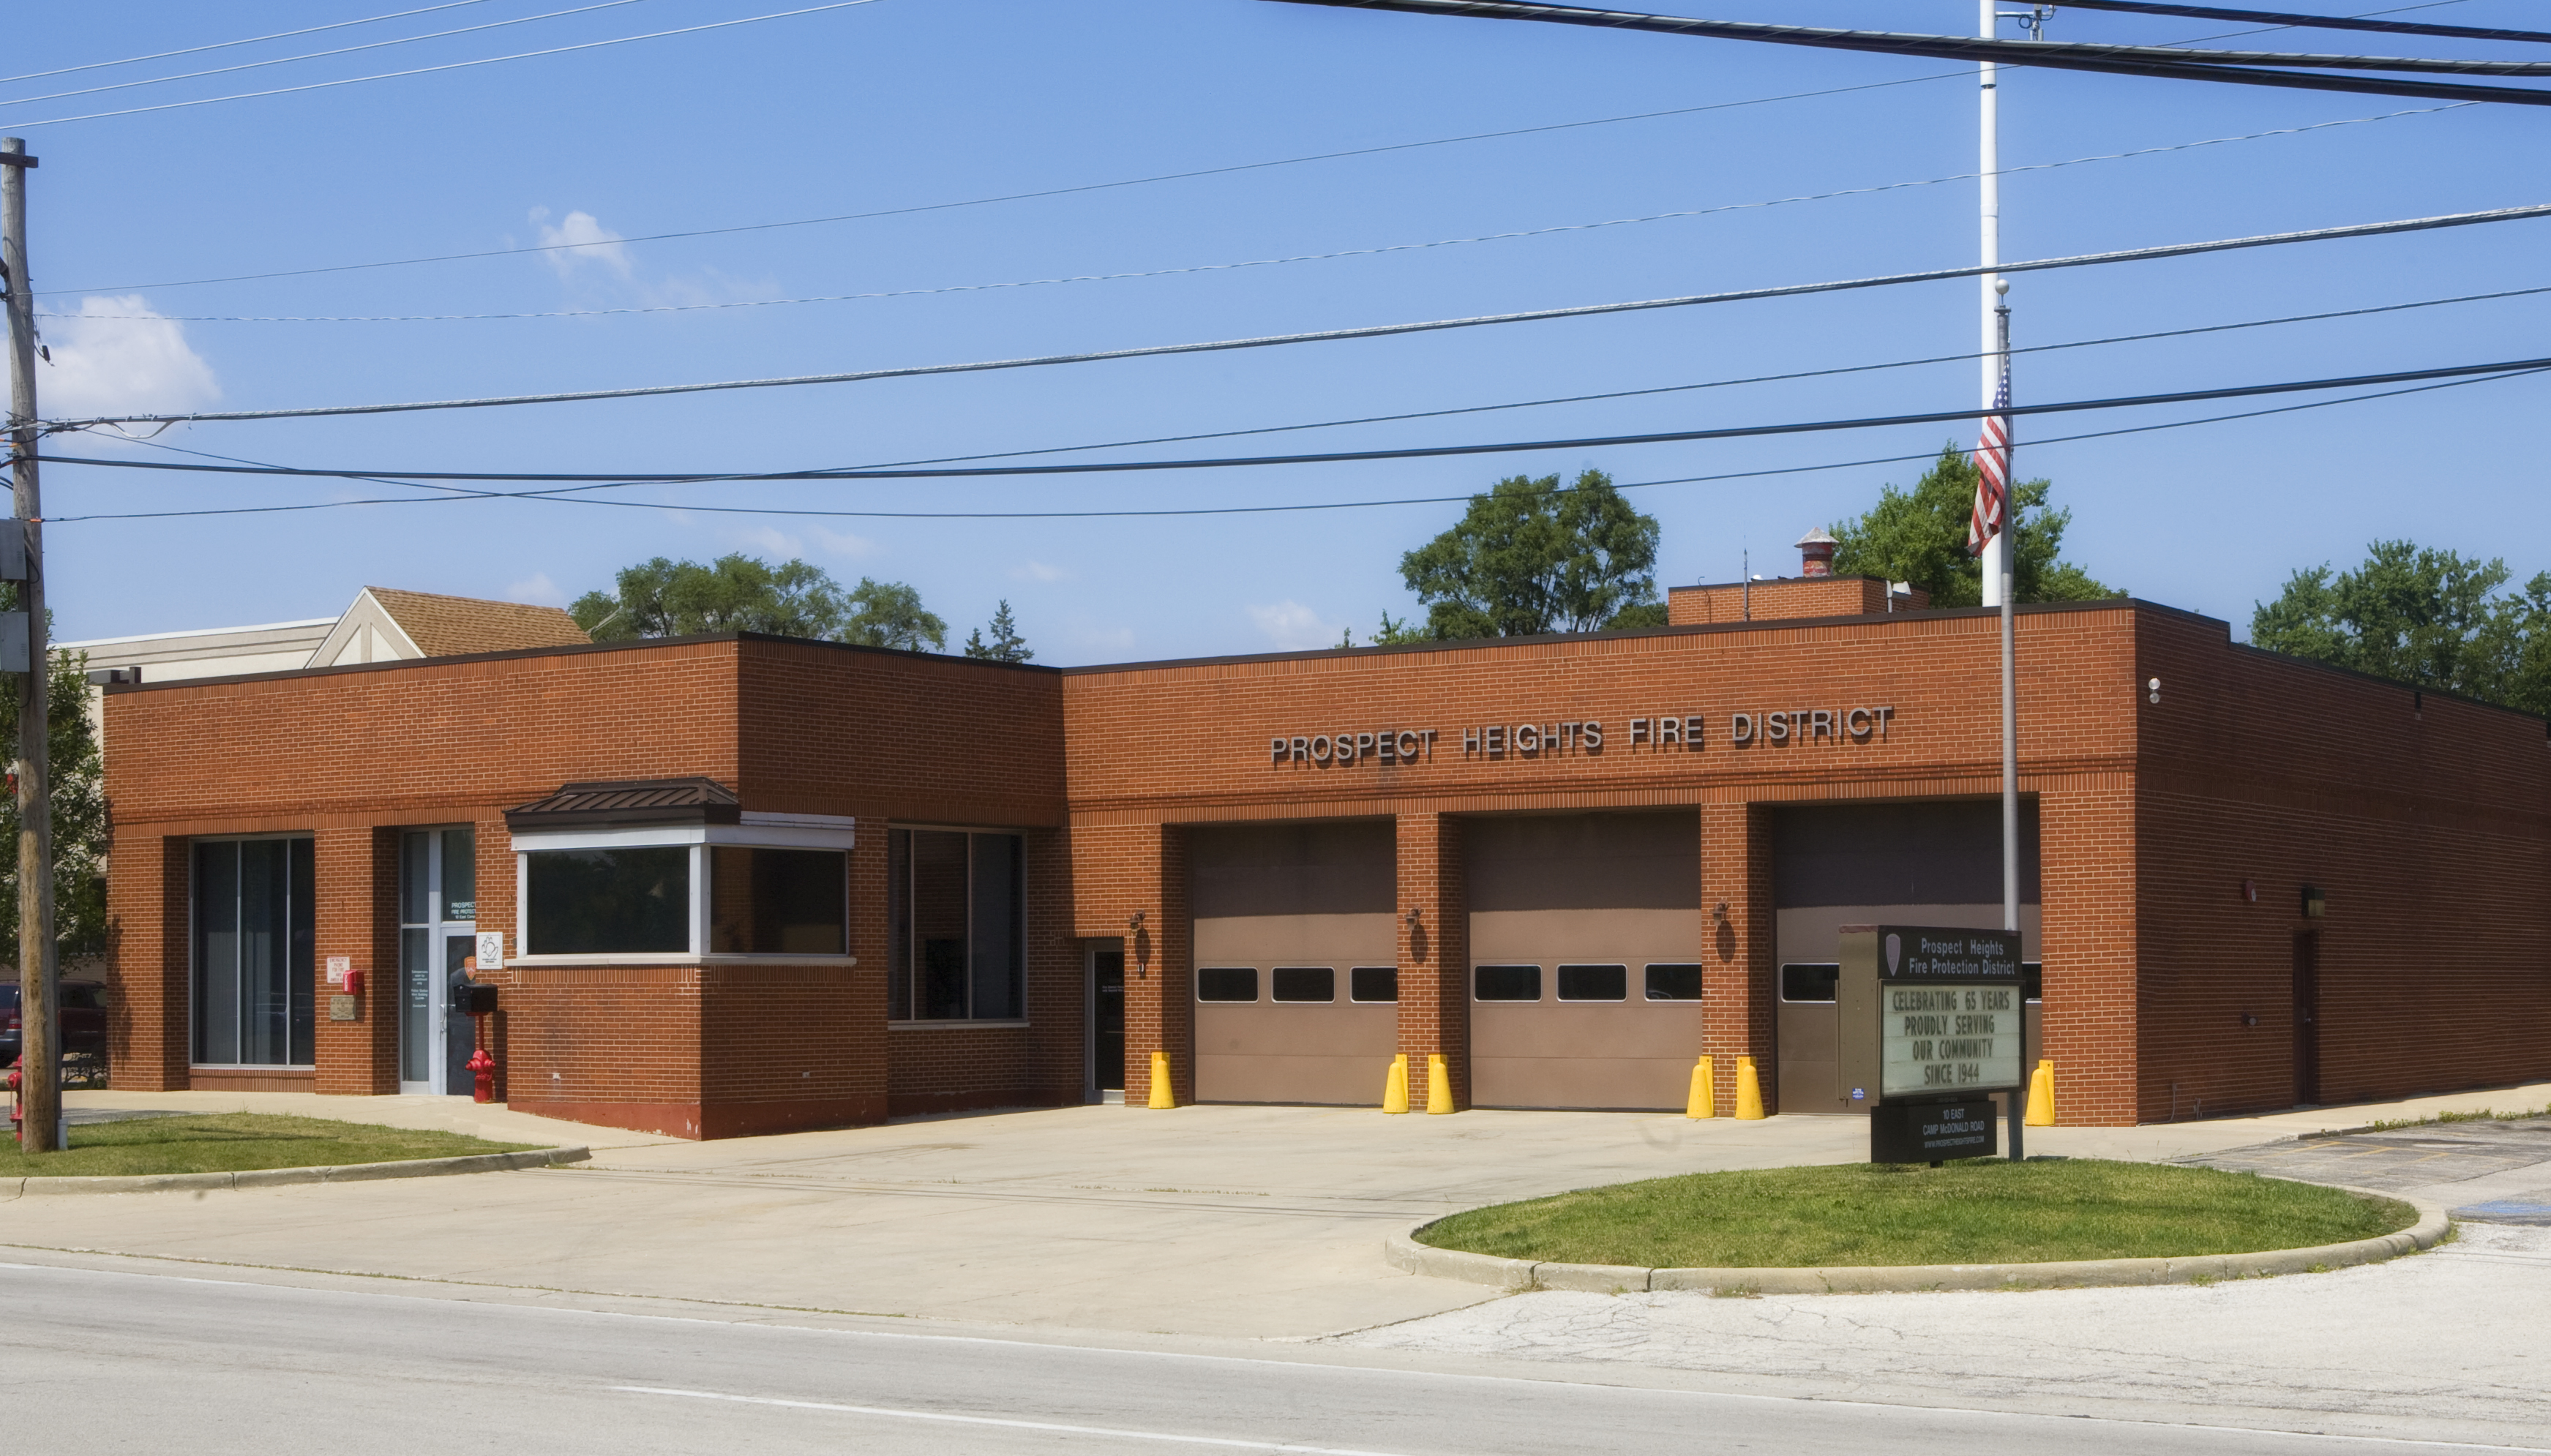 Prospect Heights Fire District Station 9